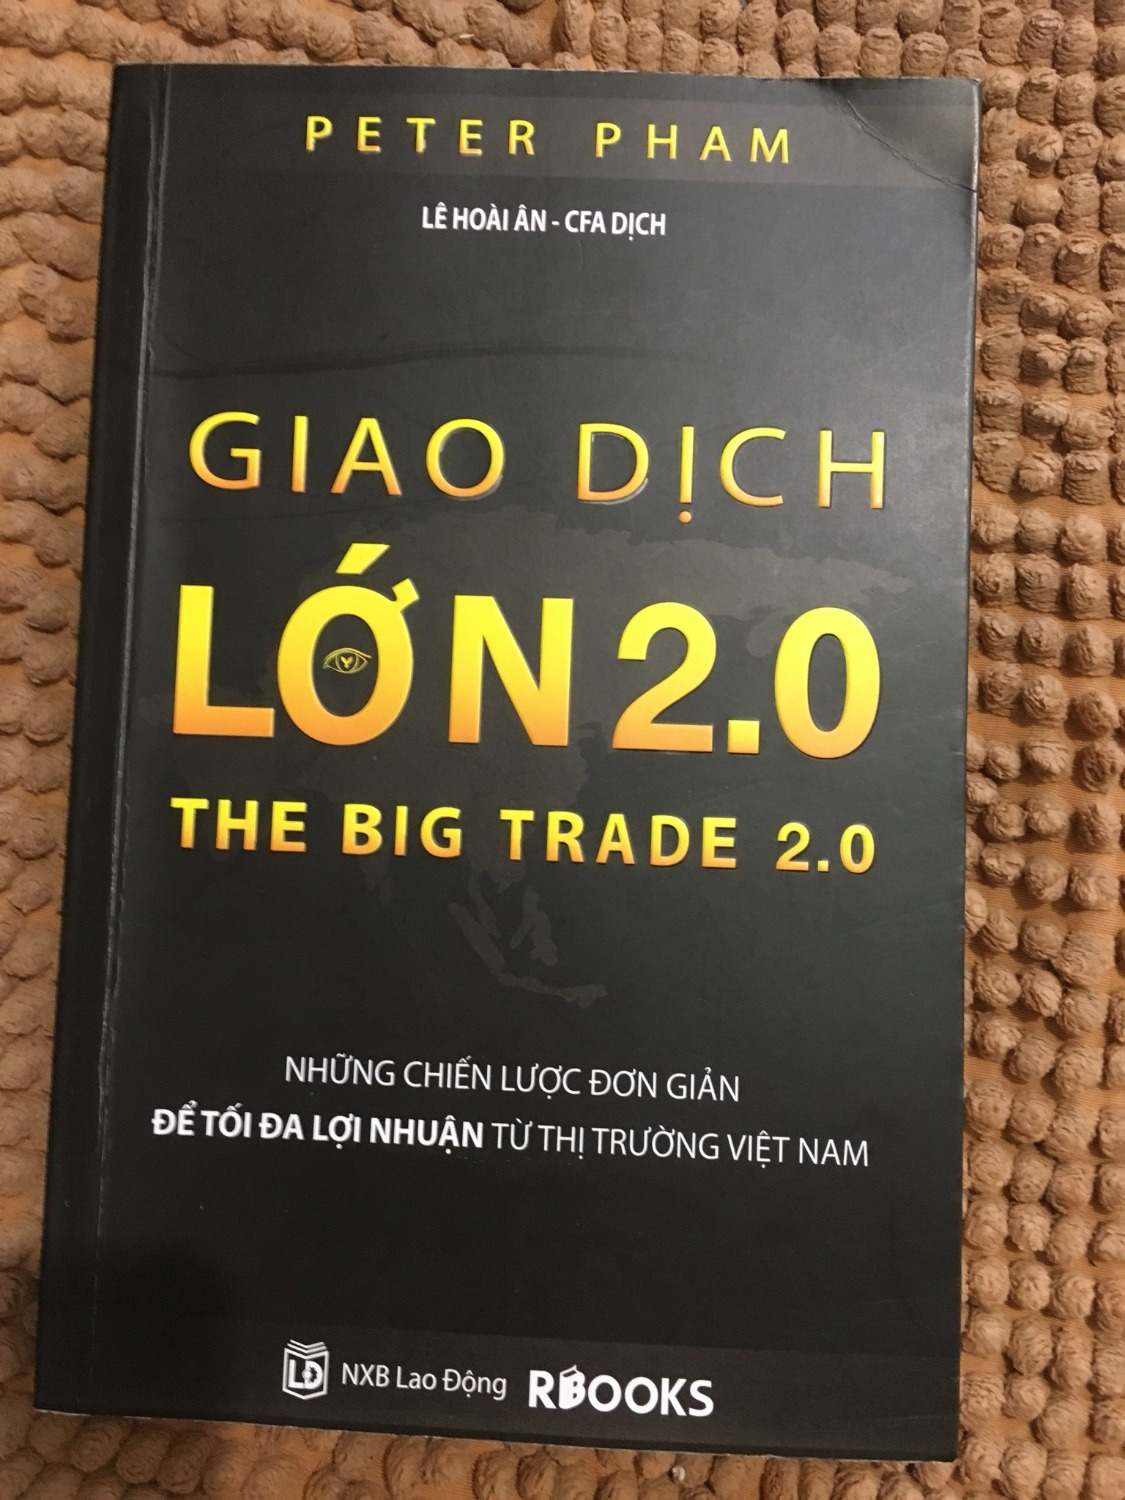 giao dịch lớn 2.0